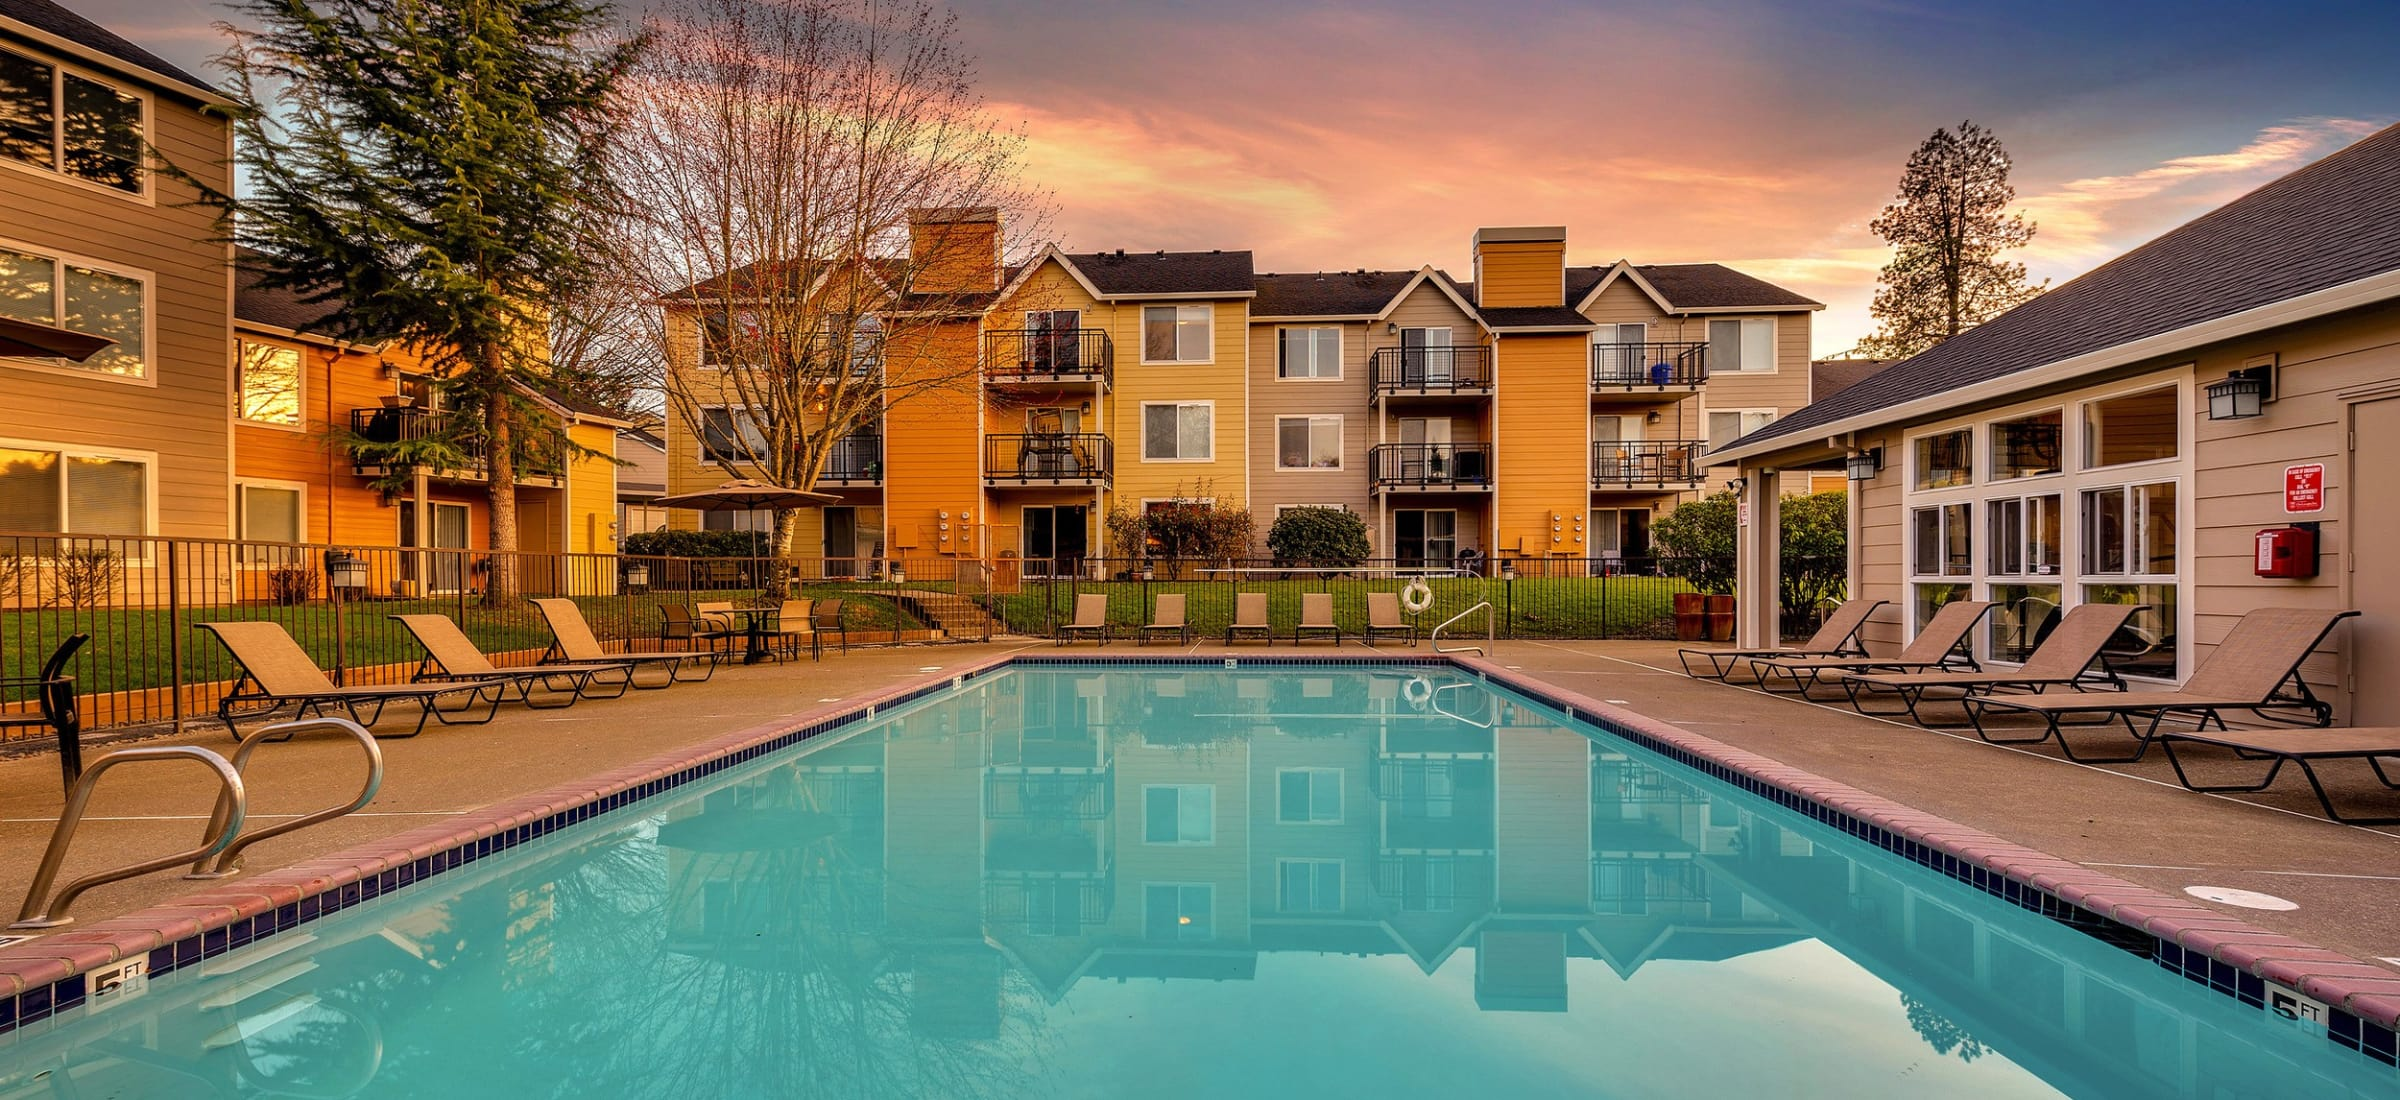 Preserve at Sunnyside Apartments | 1, 2 & 3 Bedroom Apartments in Clackamas, OR